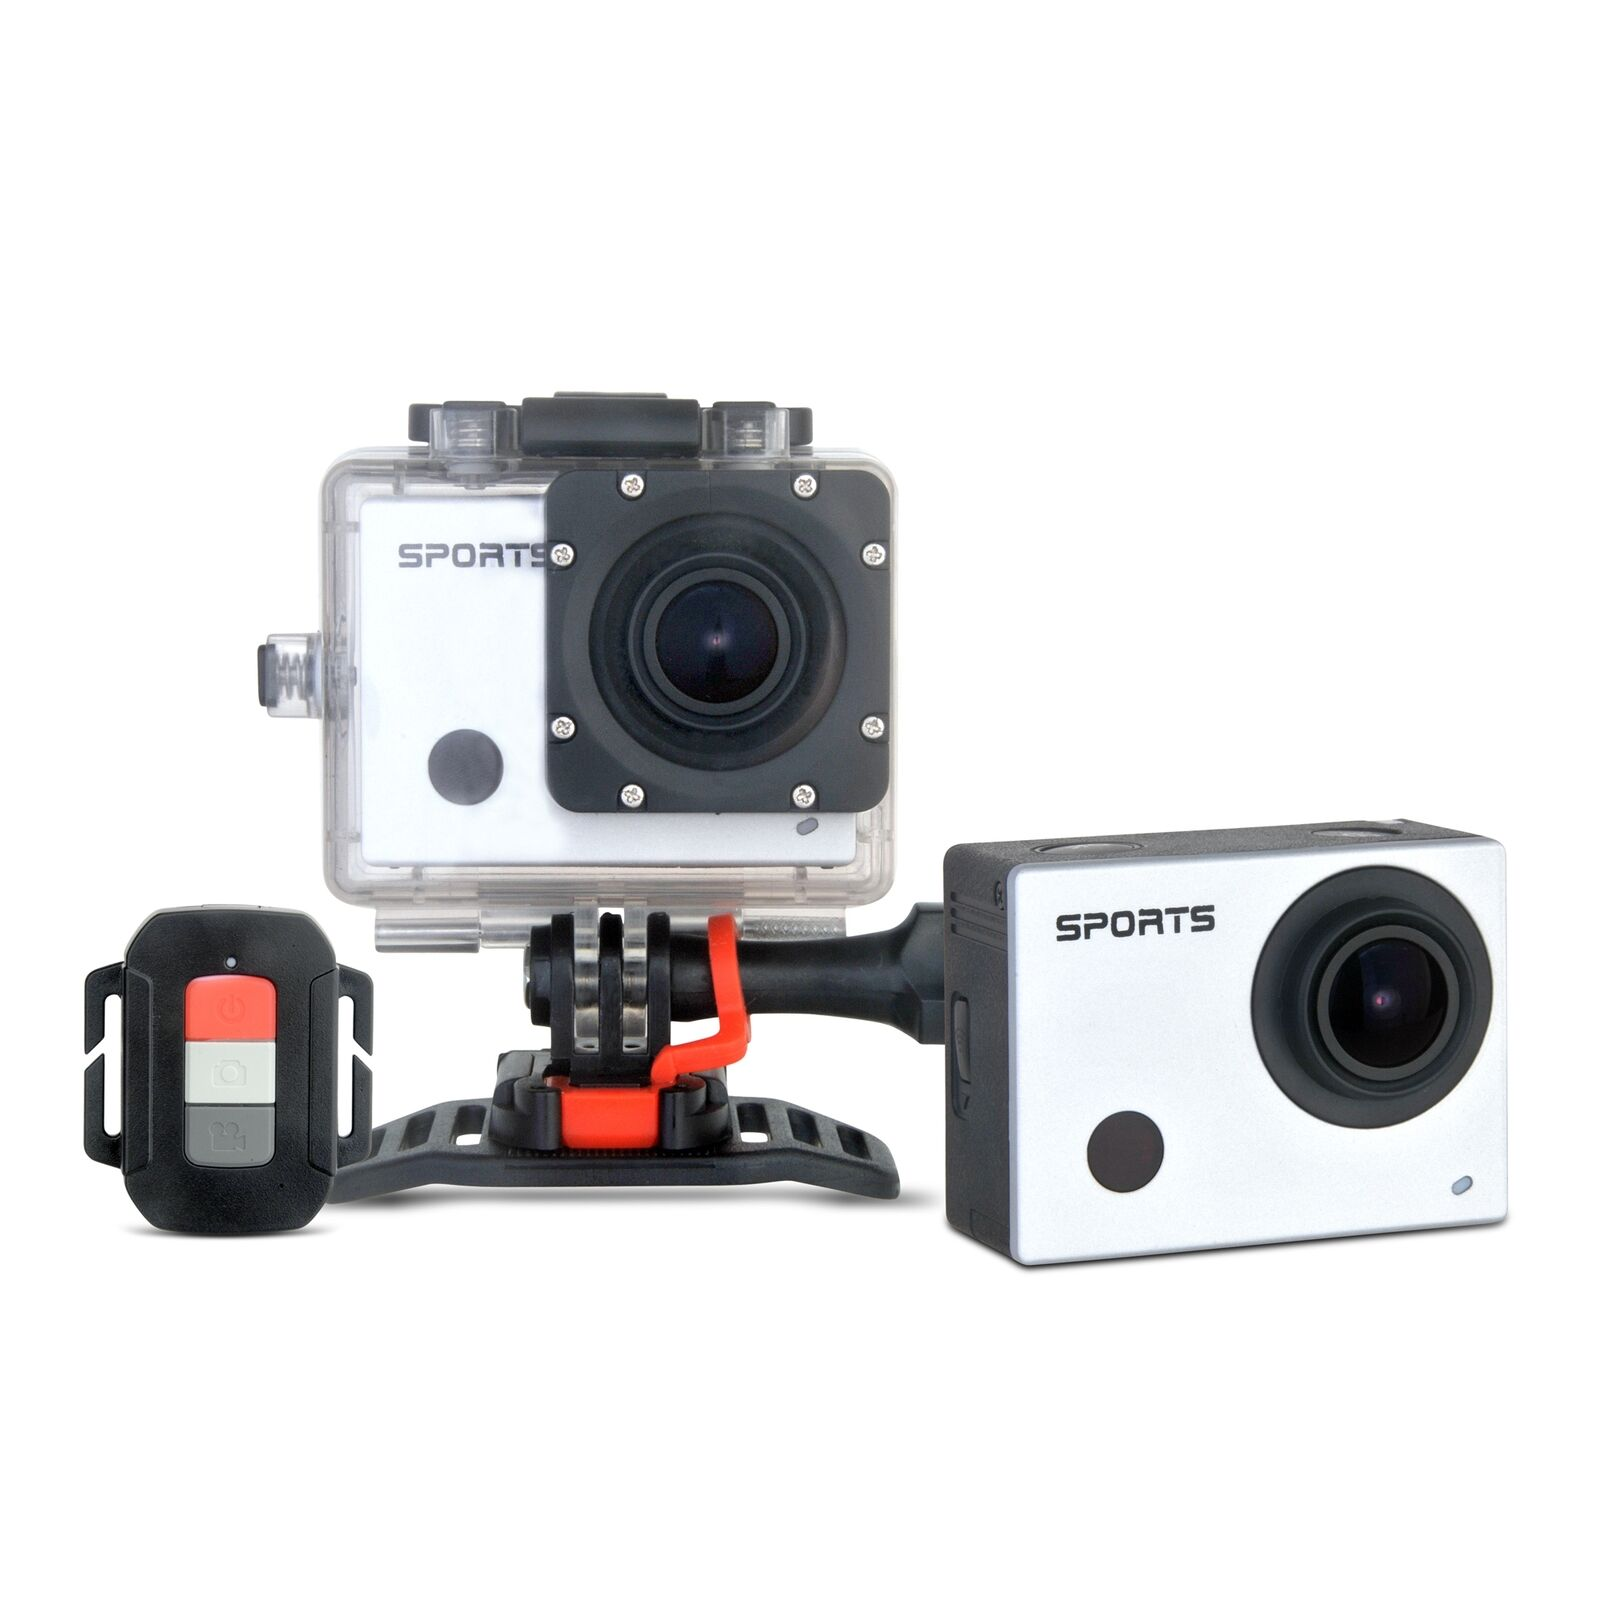 Proscan PAC2501 1080p Full HD Wi-Fi Action Sports Camera 1080p action camera Featured full pac2501 proscan sports